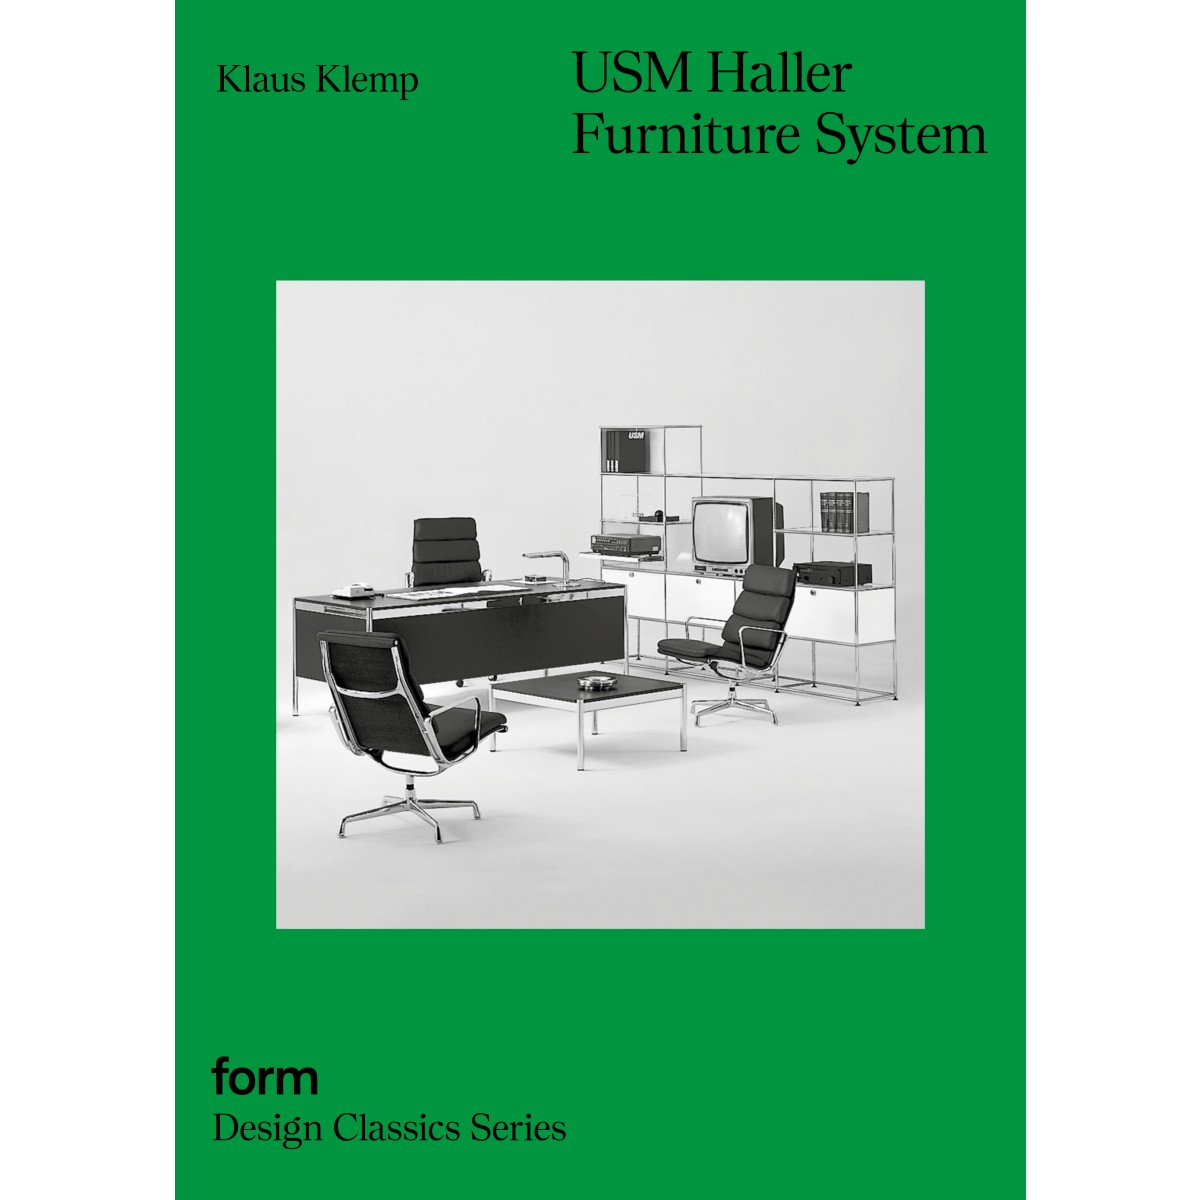 USM Haller Furniture System